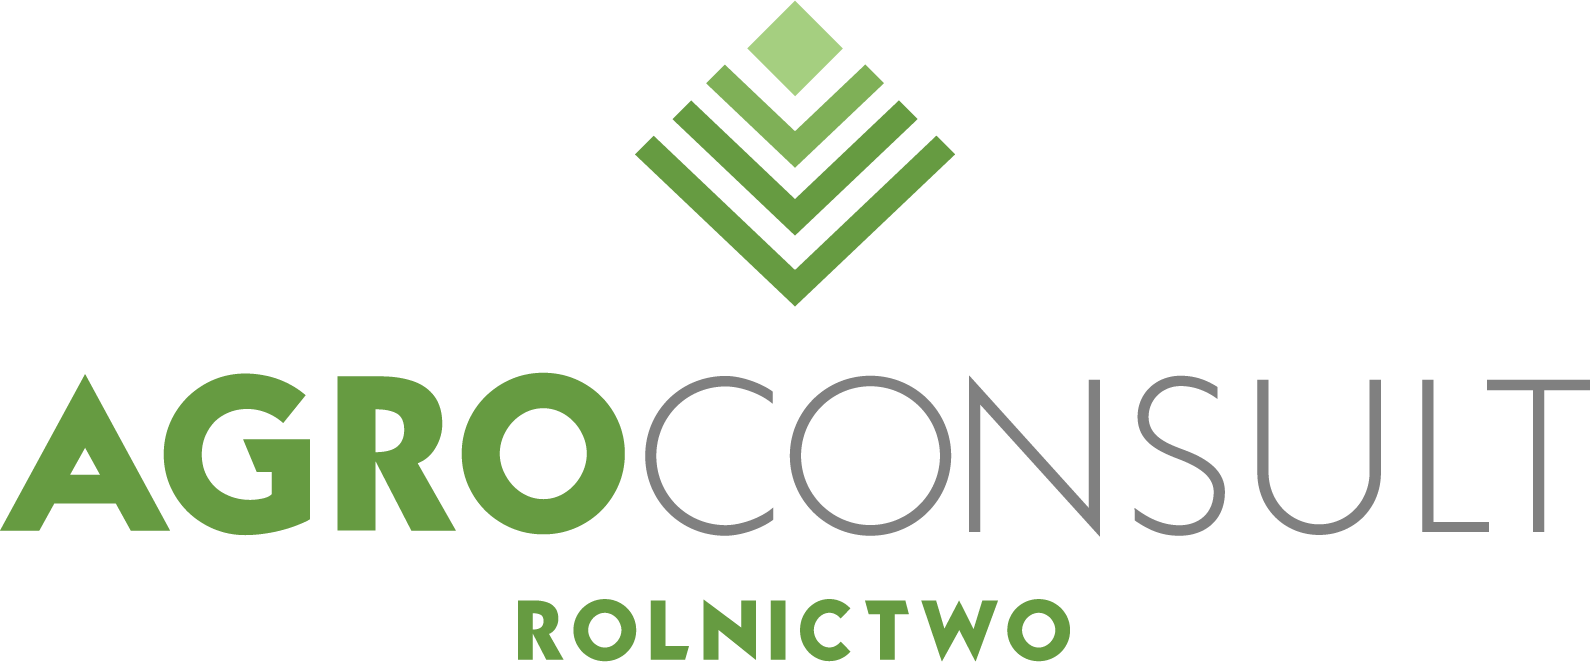 Agroconsult - Rolnictwo